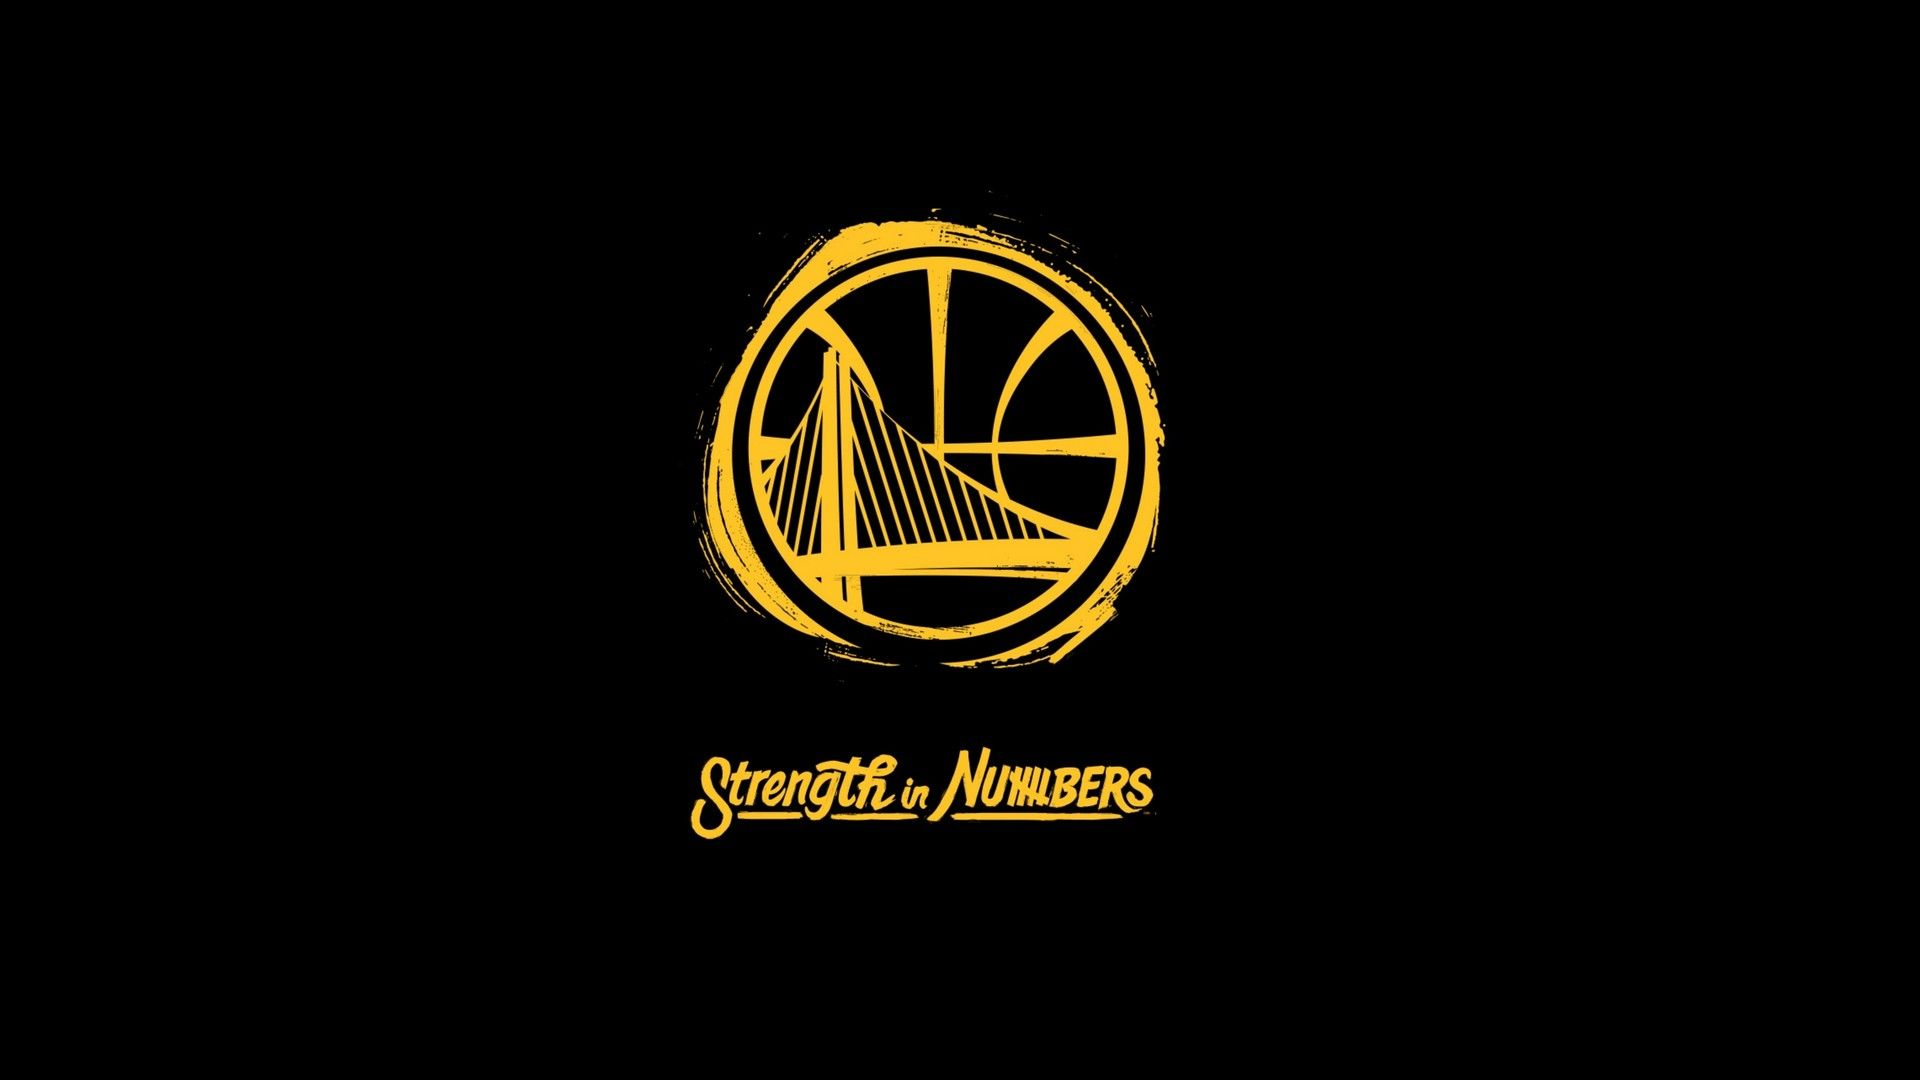 Golden State Warriors Logo Wallpapers Top Free Golden State Warriors Logo Backgrounds Wallpaperaccess